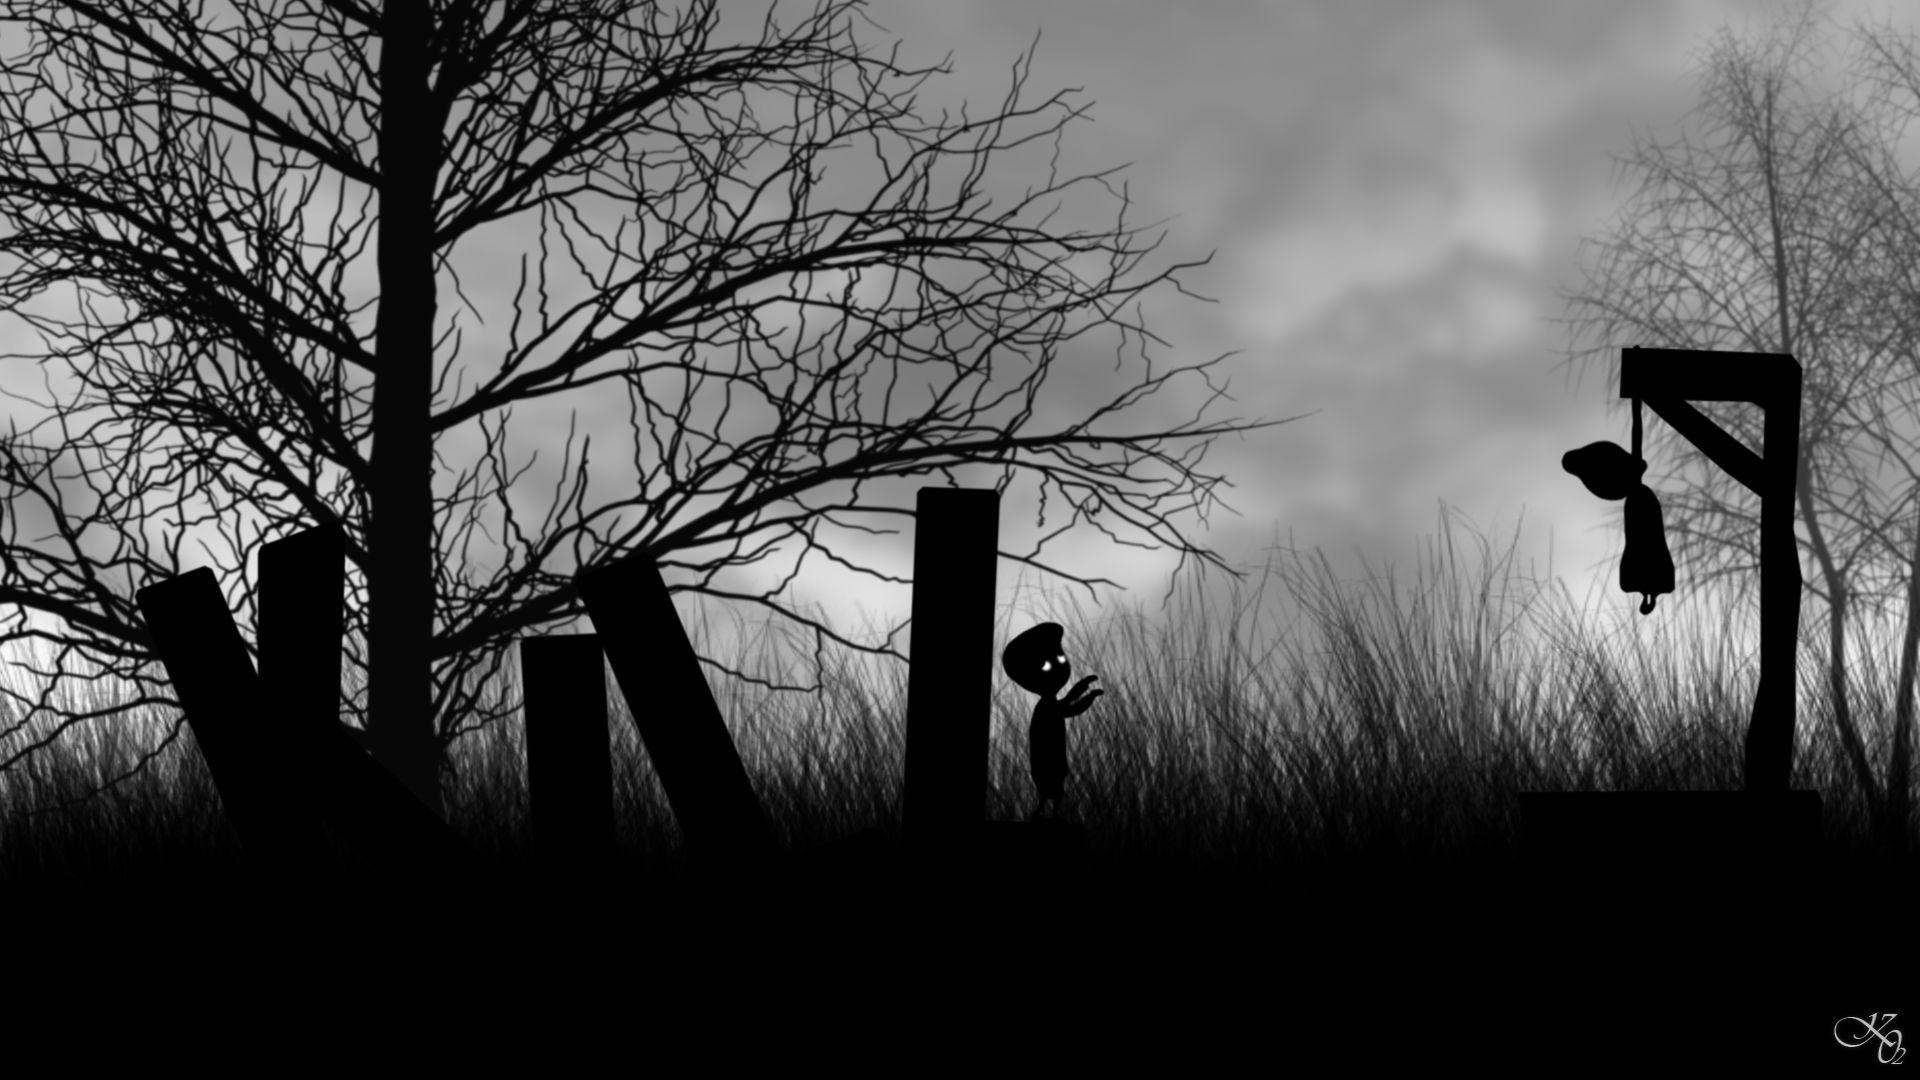 Free Download Limbo Game Wallpapers 1920x1080 For Your